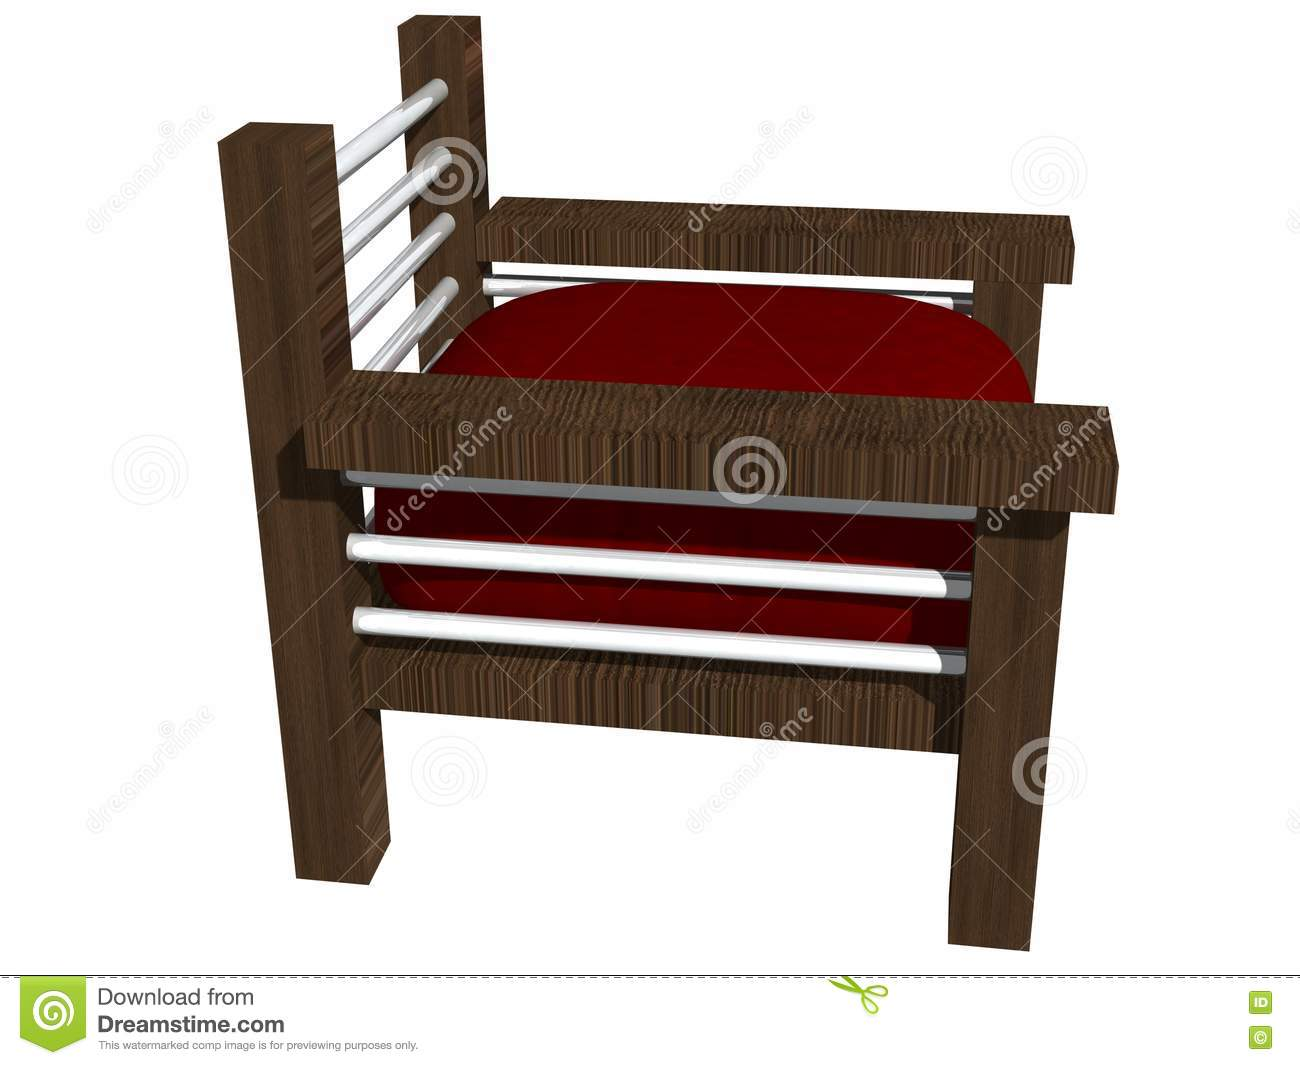 Royalty Free Stock Images: Modern wooden chair side view ...